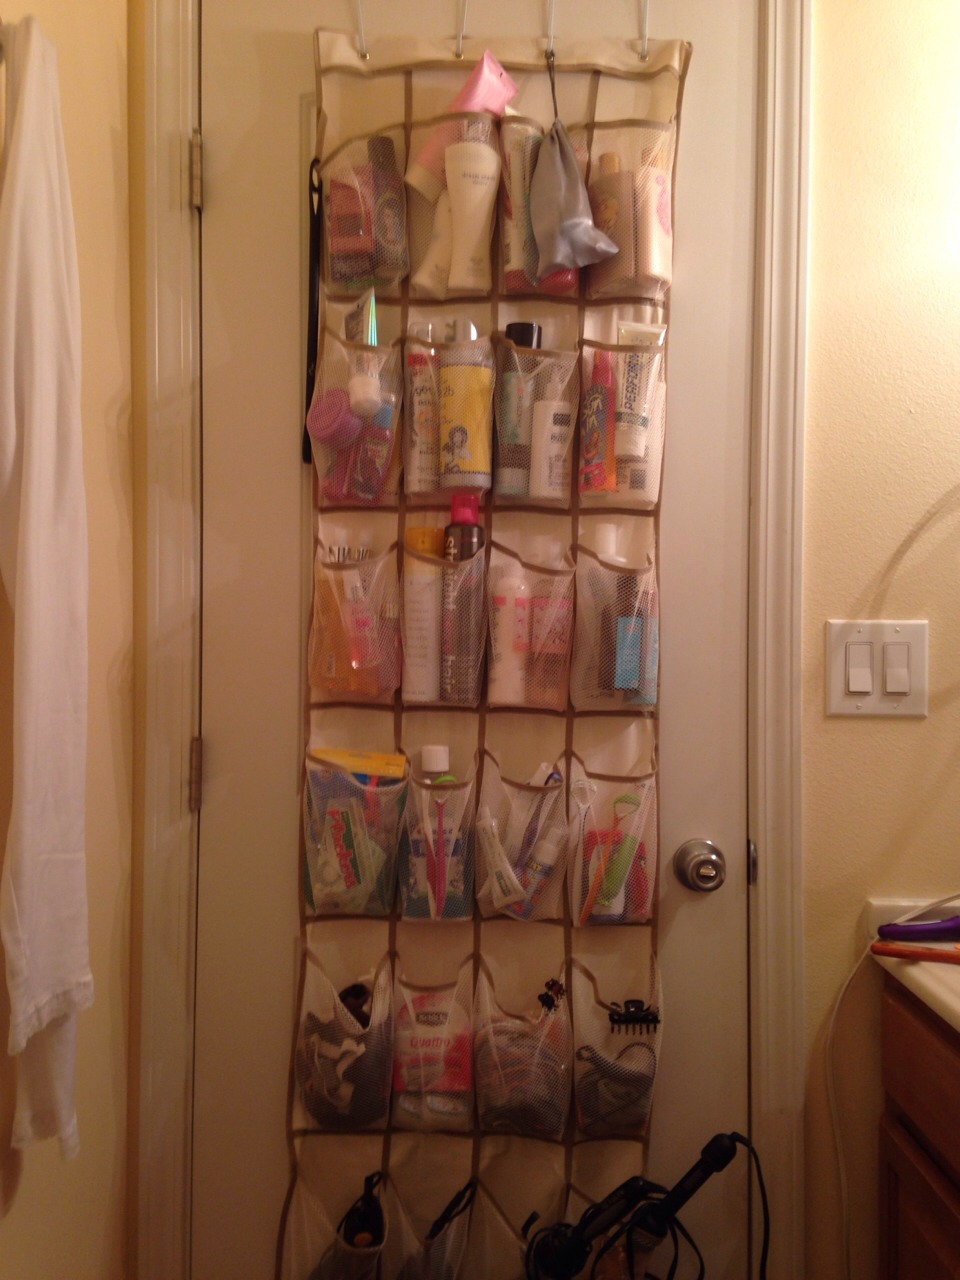 Beau Use Over The Door Shoe Organizer To Store Your Most Used Bathroom Stuff.